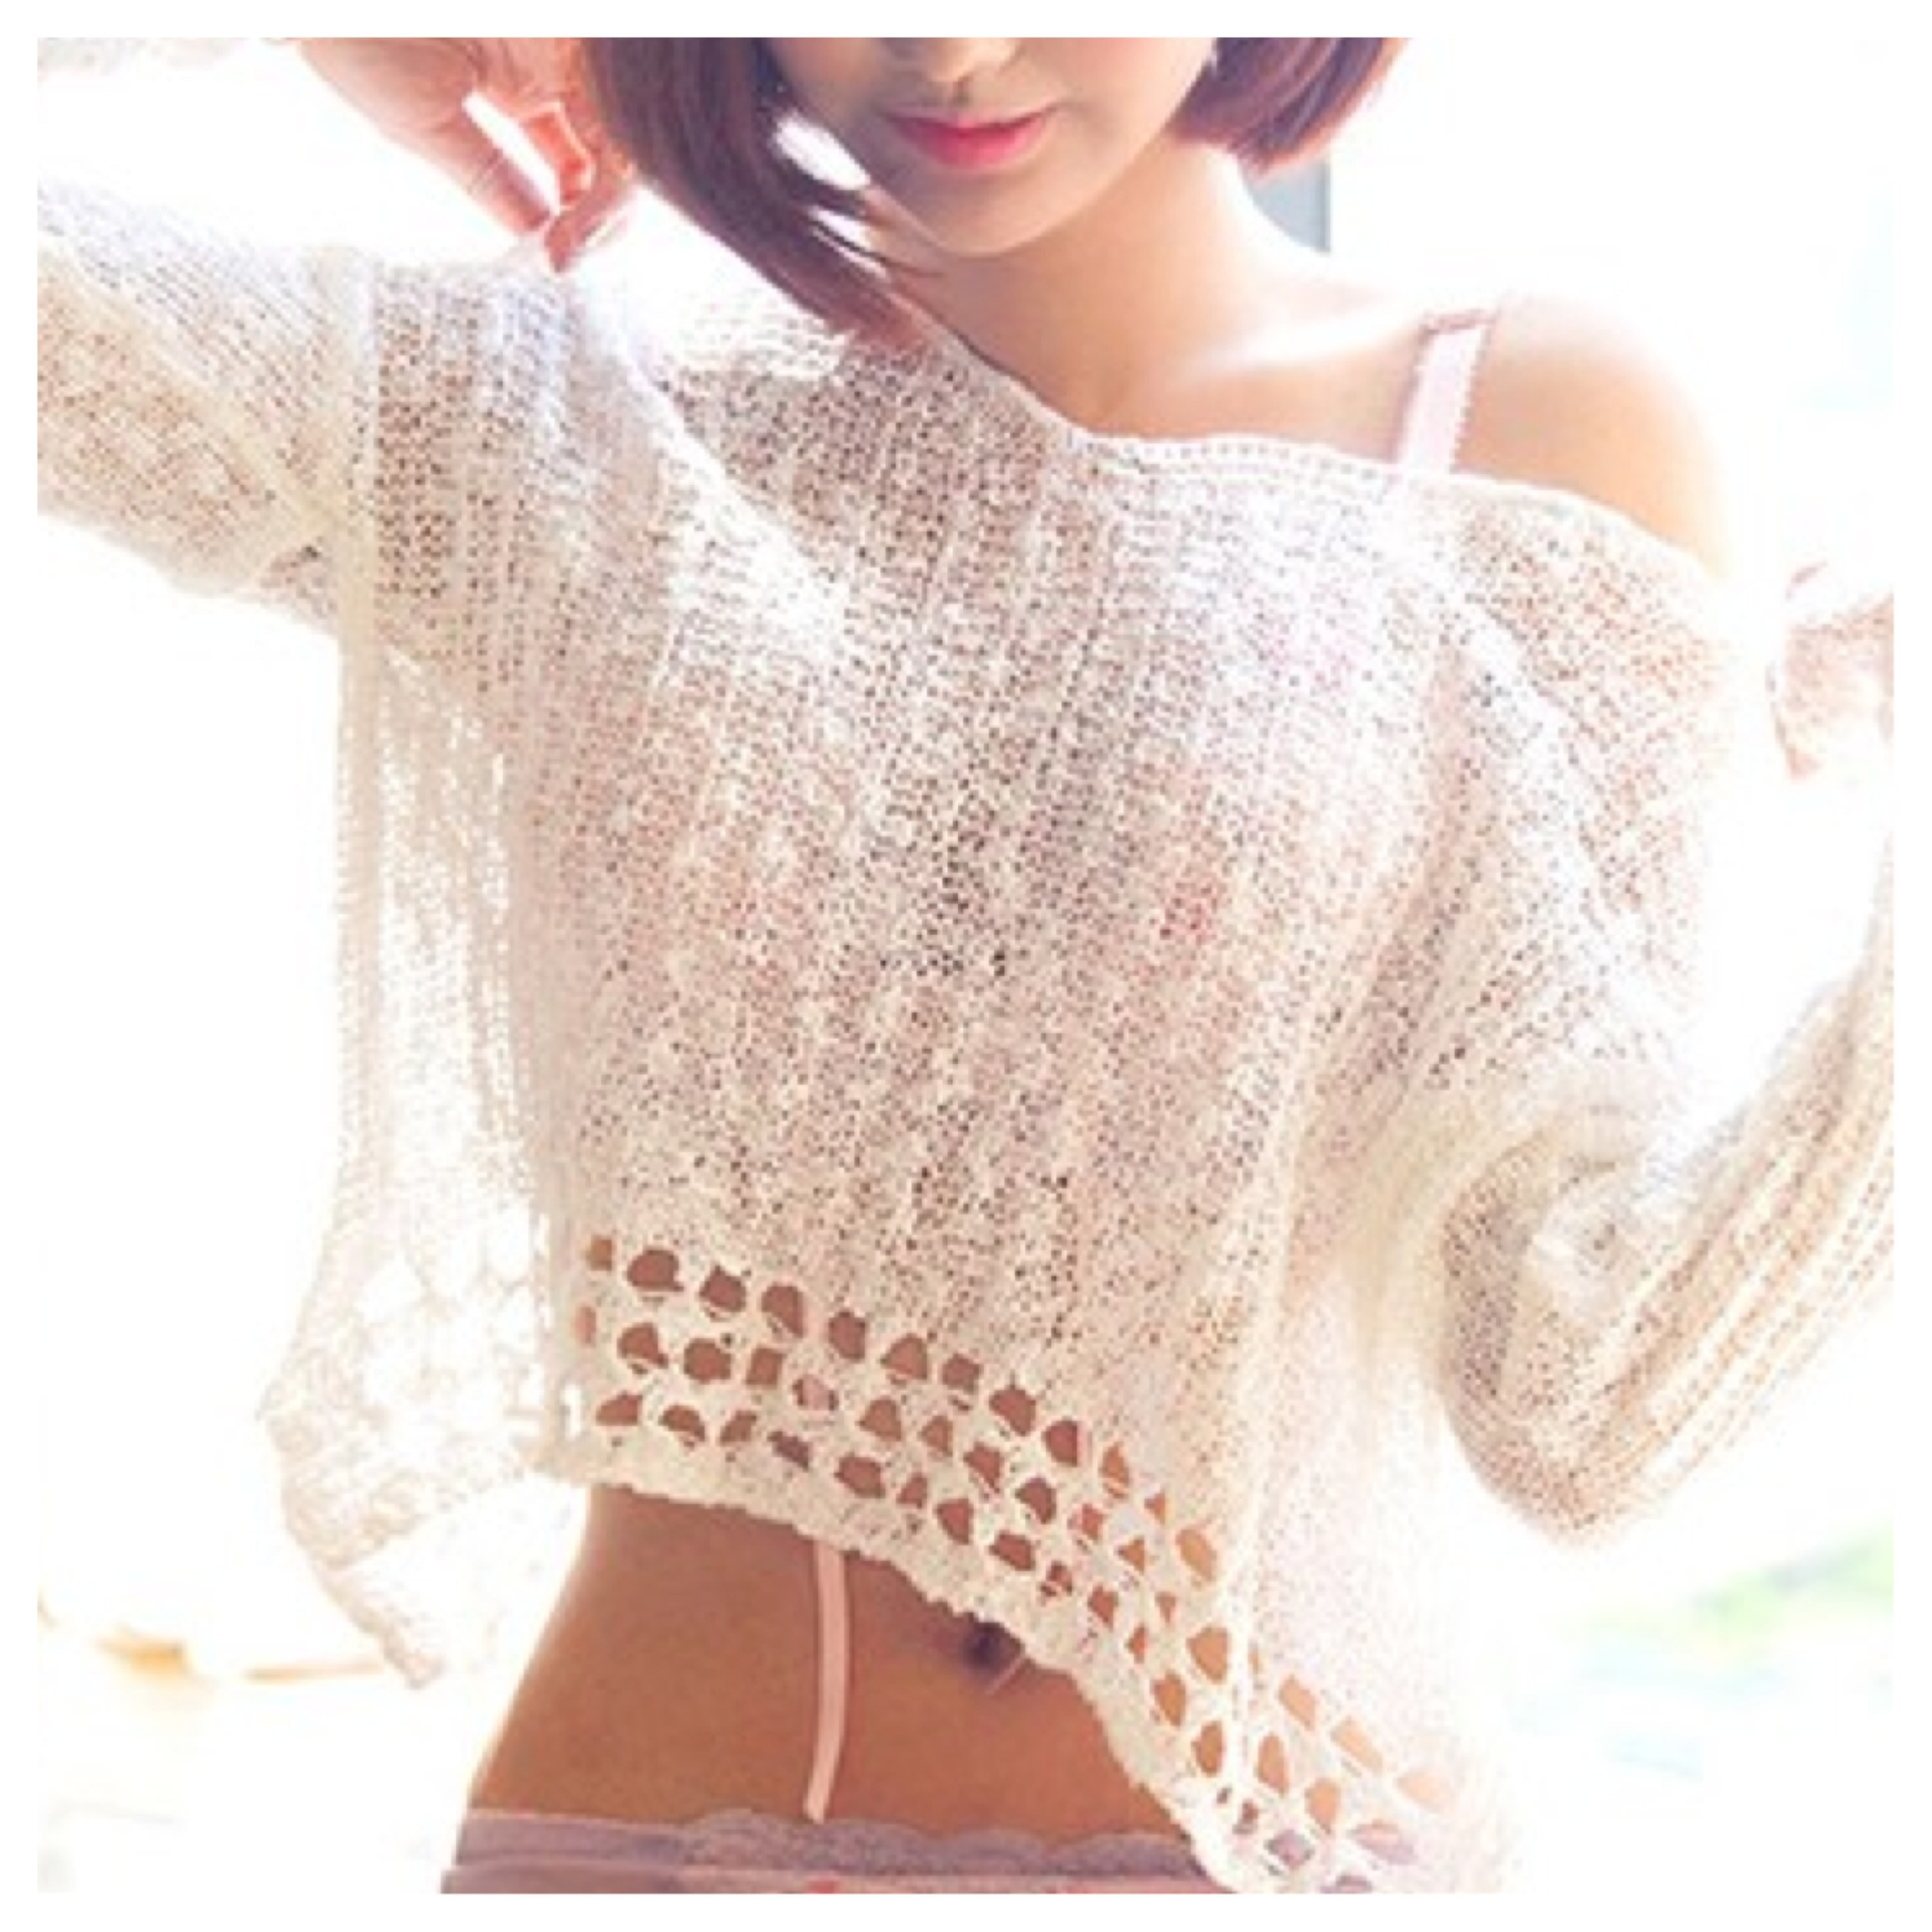 Cute crochet knit crop sweater/top from doublelw on storenvy